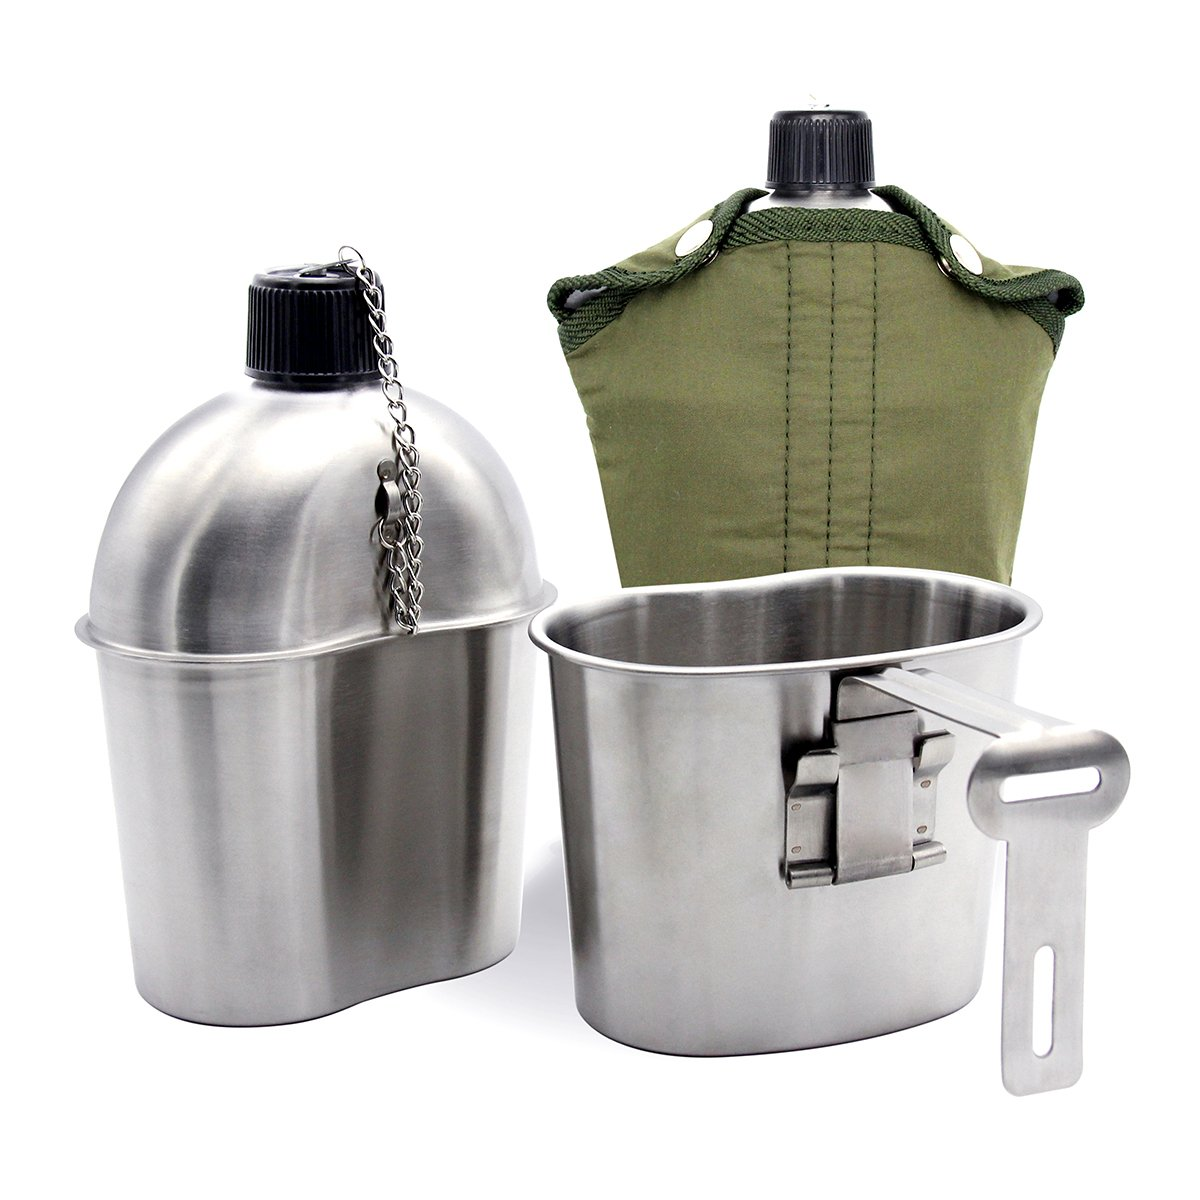 TargetEvo Stainless Steel Military Canteen 1QT Portable with 0.5QT Cup Green Cover Camping Hiking G.I. by TargetEvo